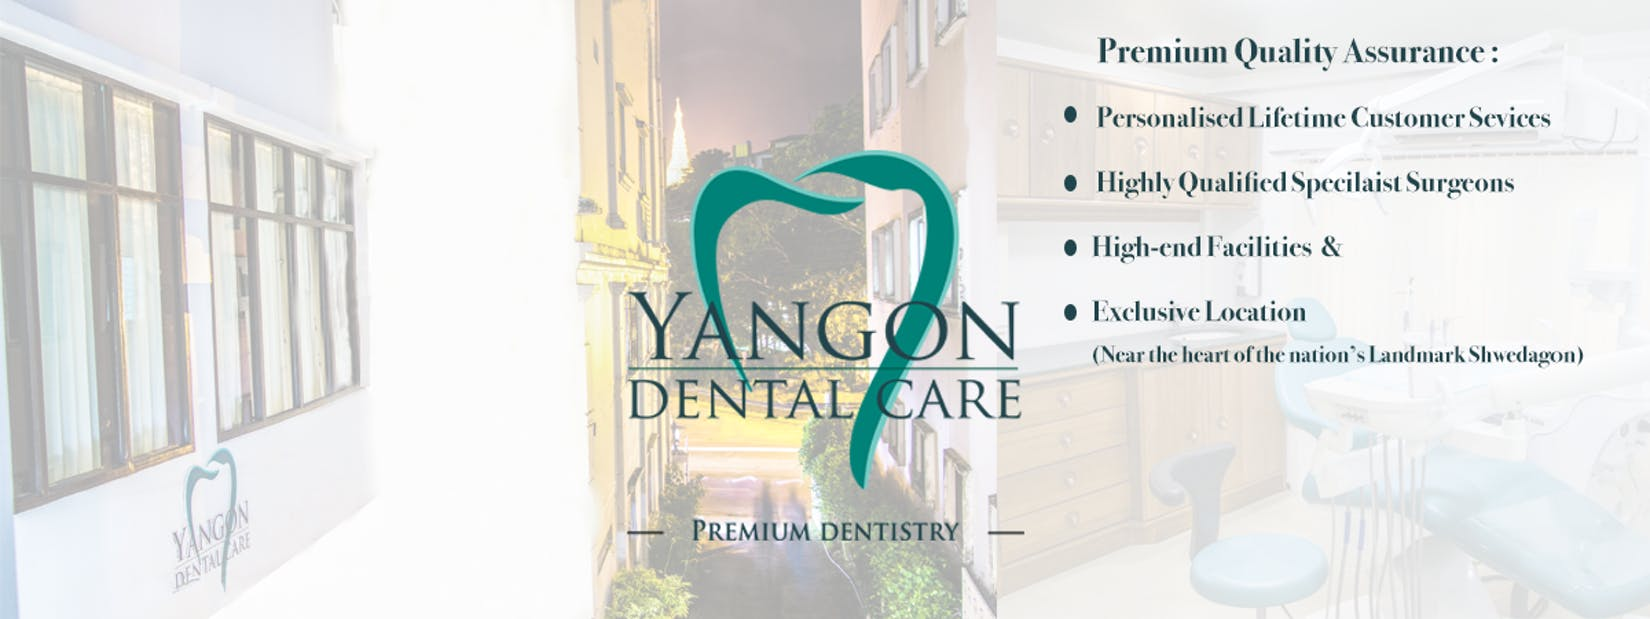 Yangon Dental Care | Medical